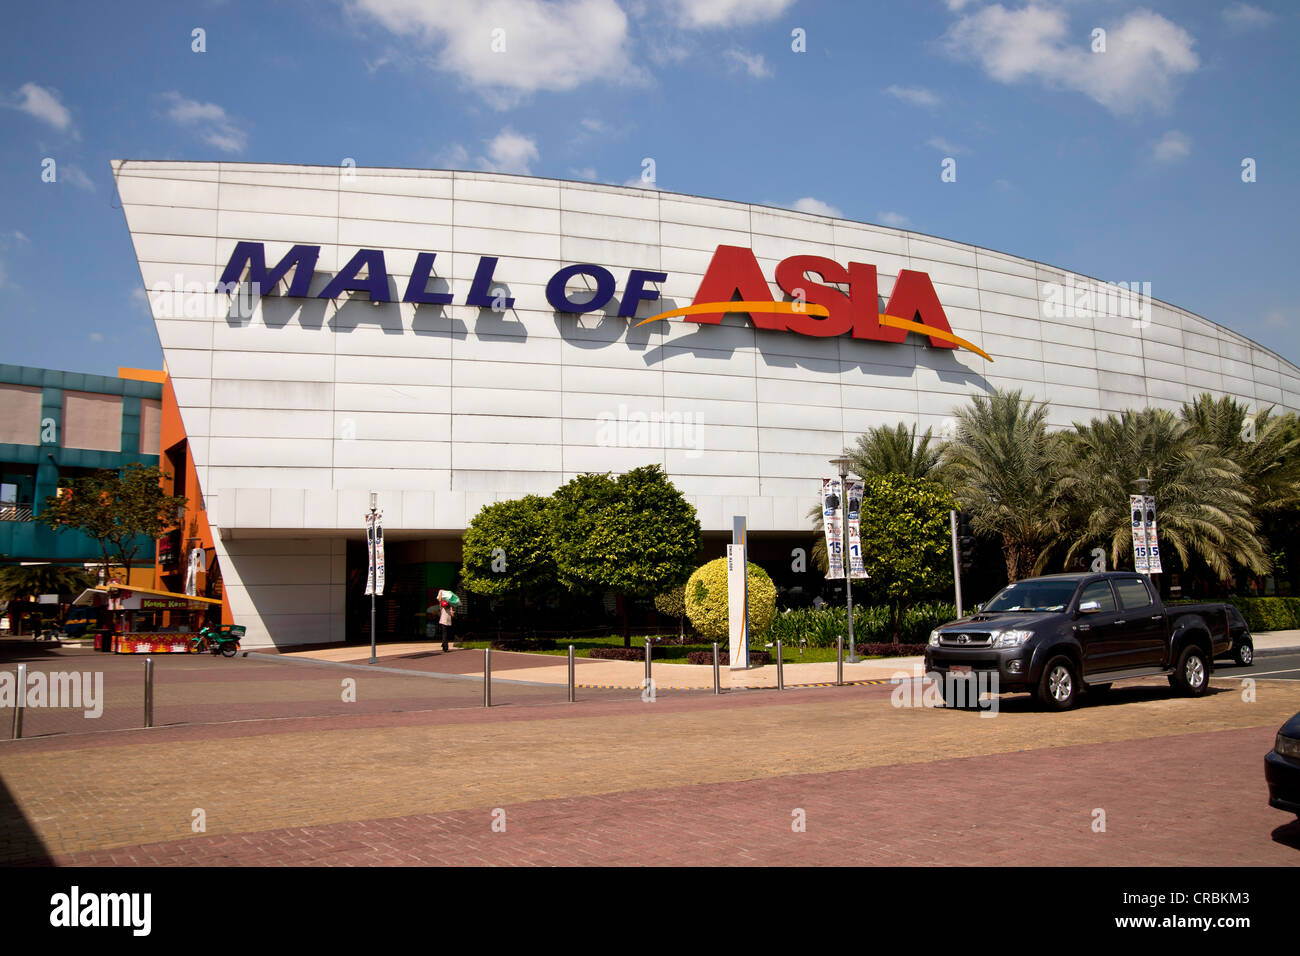 Mall of Asia shopping centre, Manila, Philippines, Asia - Stock Image